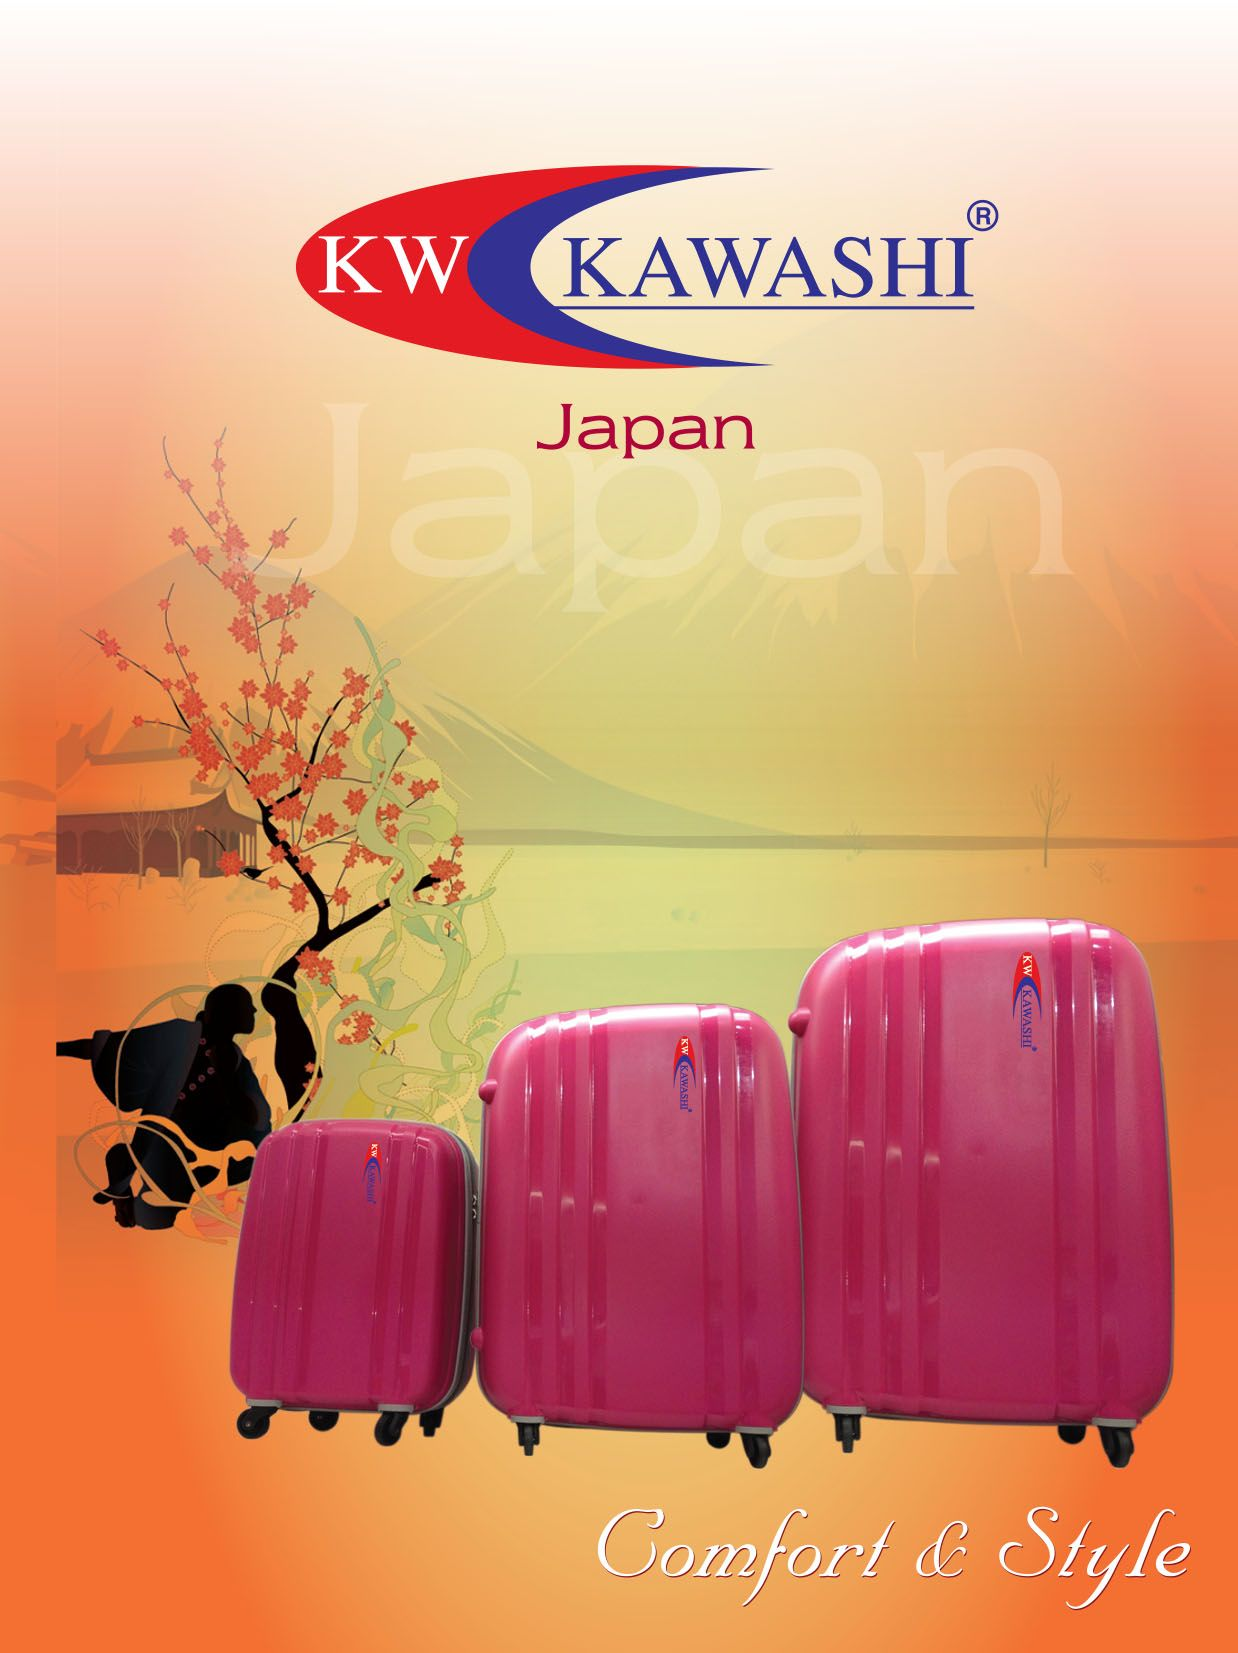 KAWASHI offers a wide range of durable and splashy luggage bags available in all standard sizes  Buzz us for Bulk orders on +971 55 600 3950 / +971 55 805 2123 or write to us at: social@fakhruddin.ae